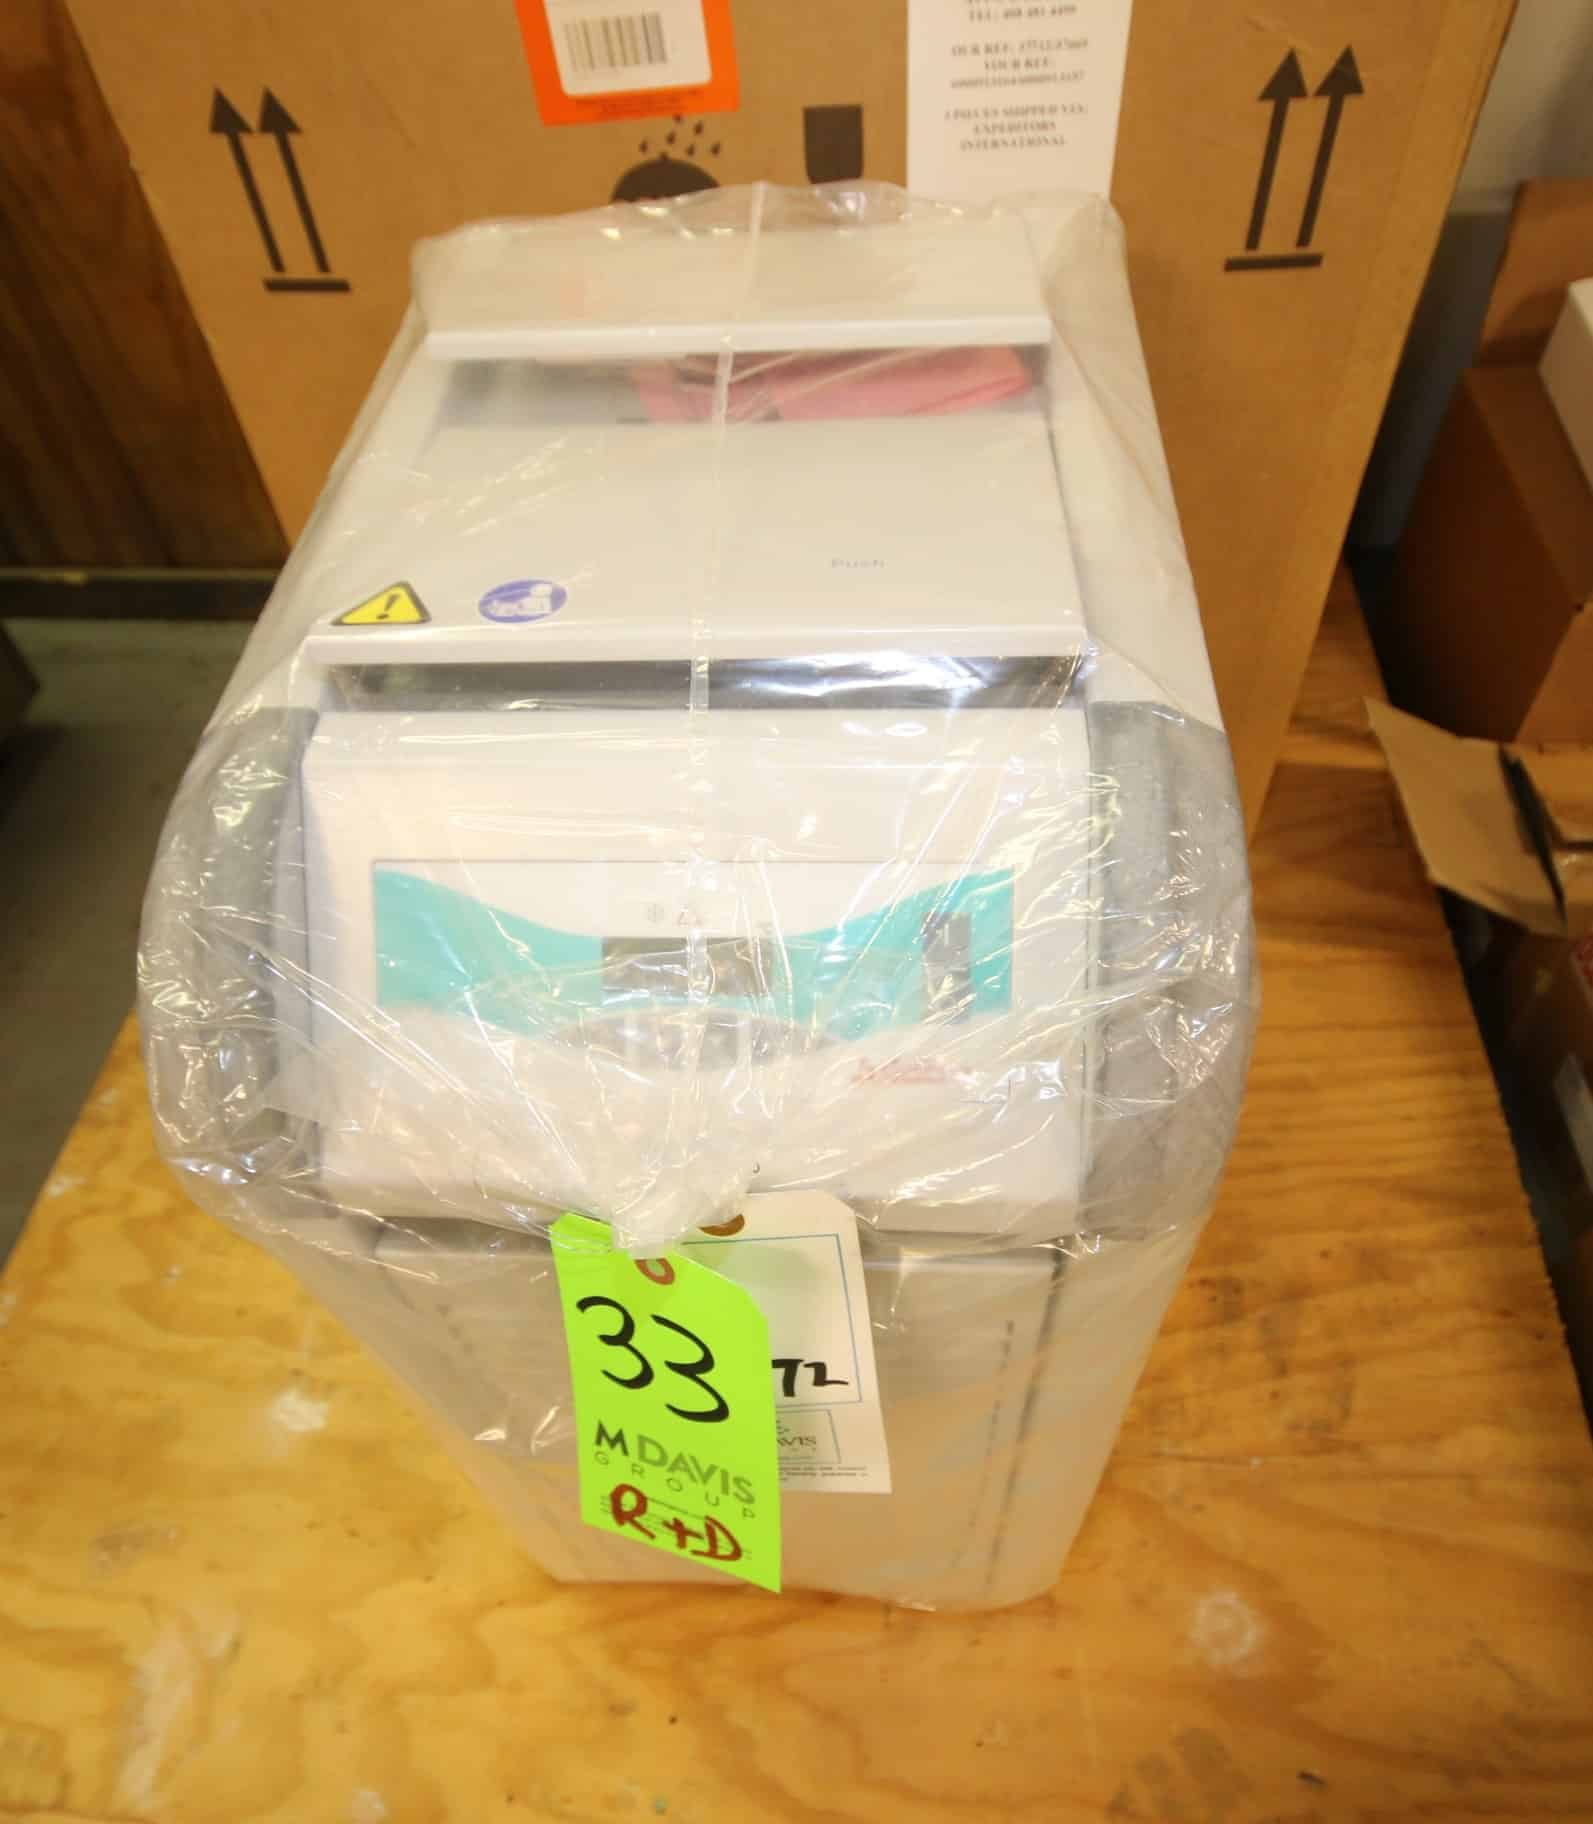 NIB Julabo Recirculating Cooler, Model FL601, SN 10257293, Order No. 9661006, 115V, -20 to 40°C, (Ideal for routine cooling applications within the laboratory and industry. Features a PID control temperature stability of is ±0.5°C and a tank capacity of 5.5 to 8L)